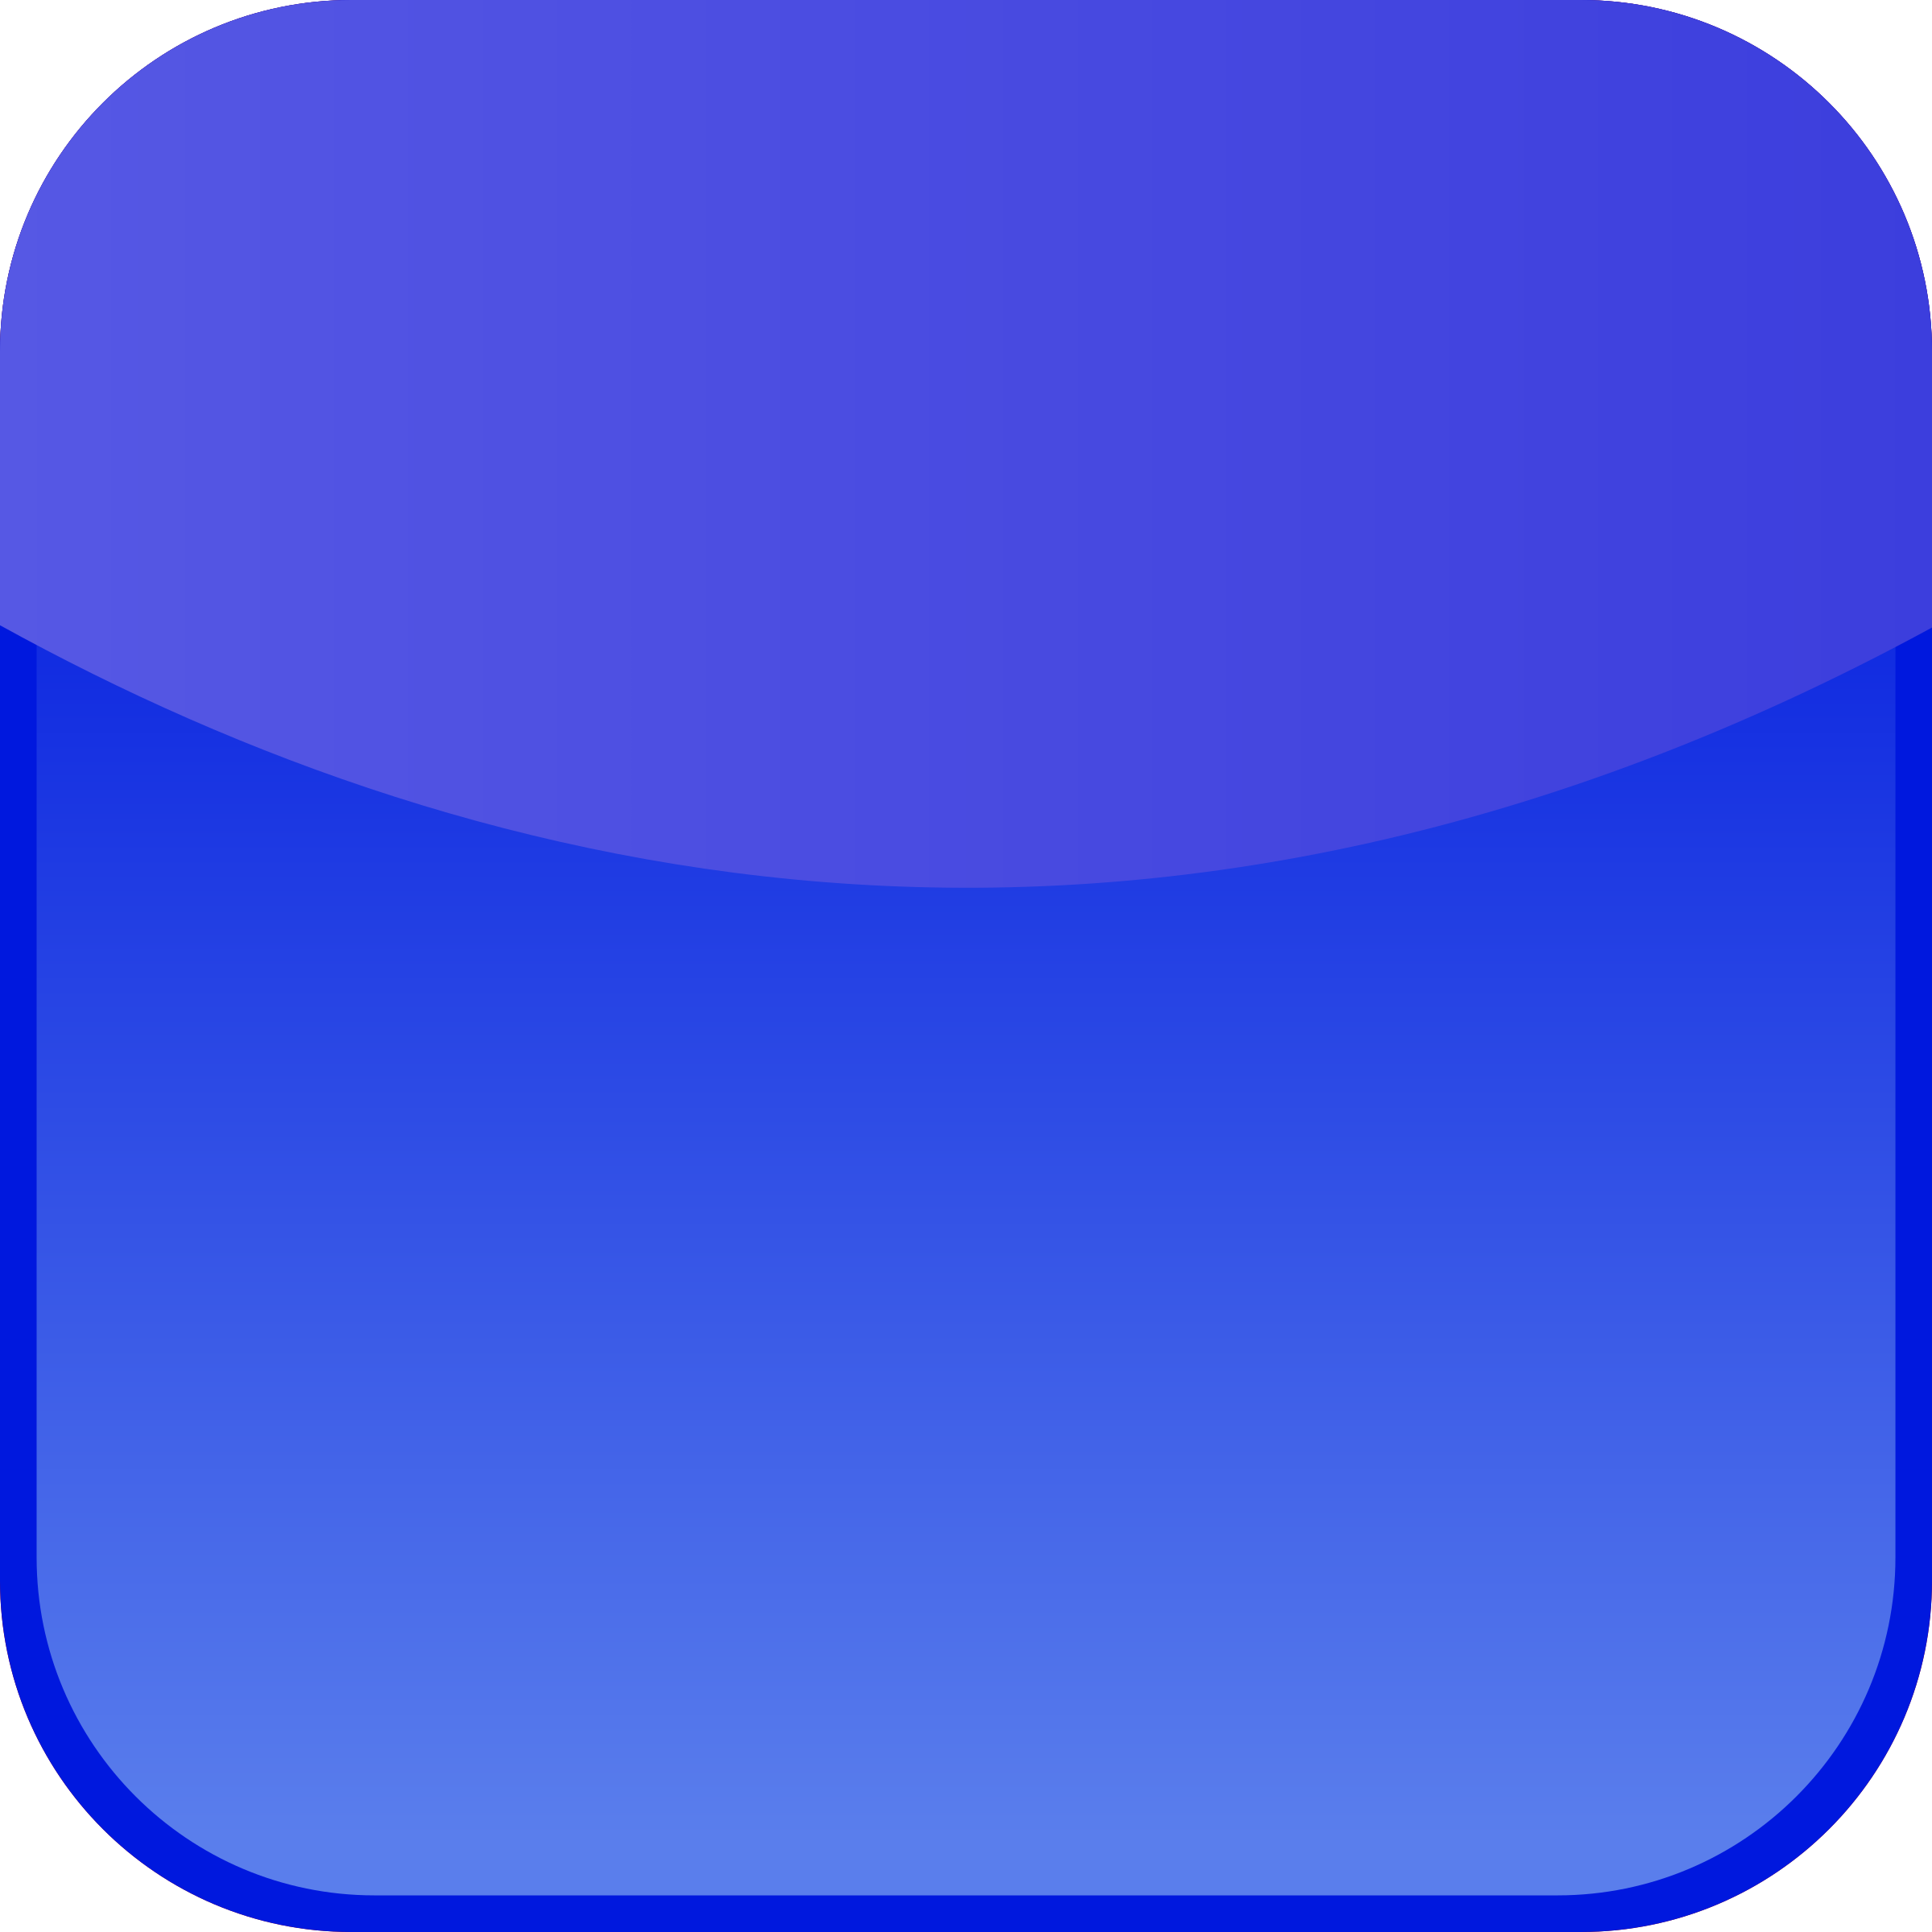 blue icon by shokunin